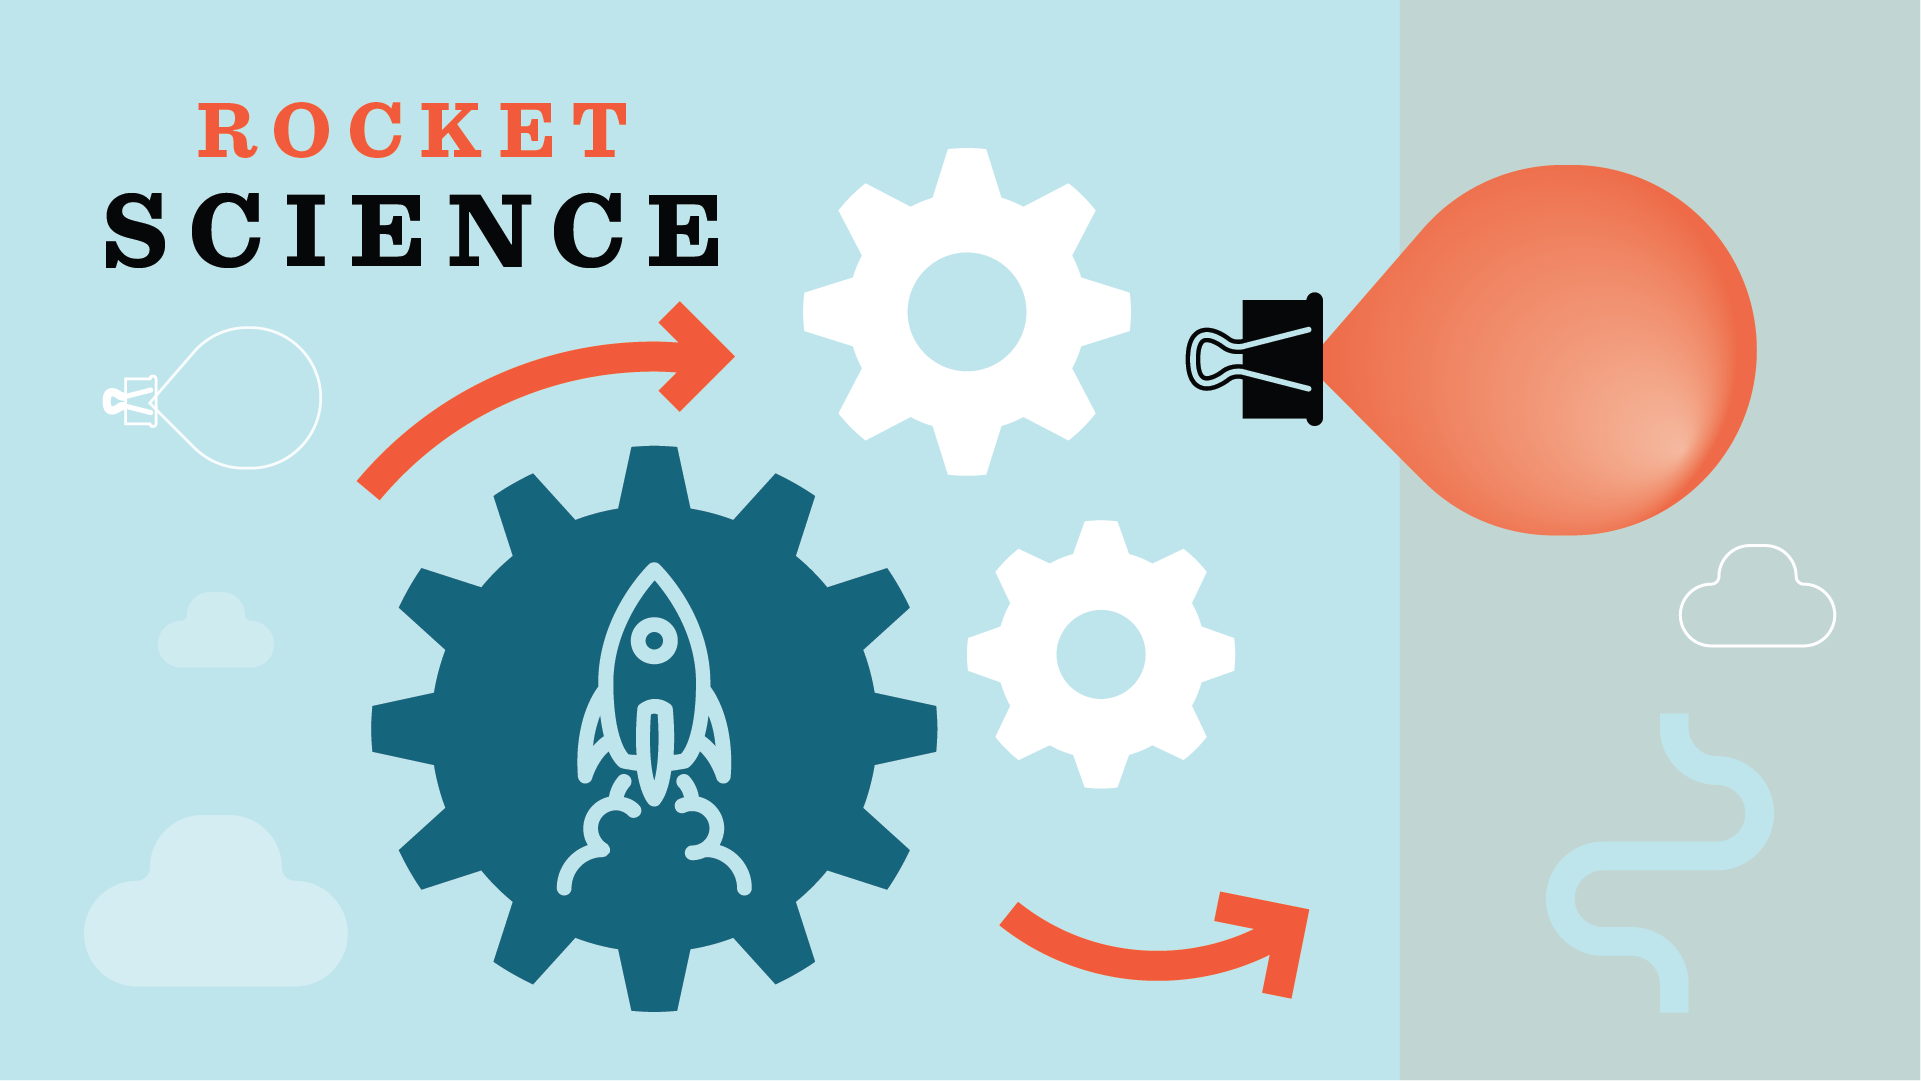 """Graphic showing cogs, balloon, binder clip, clouds and rocket with the words """"Rocket Science"""""""